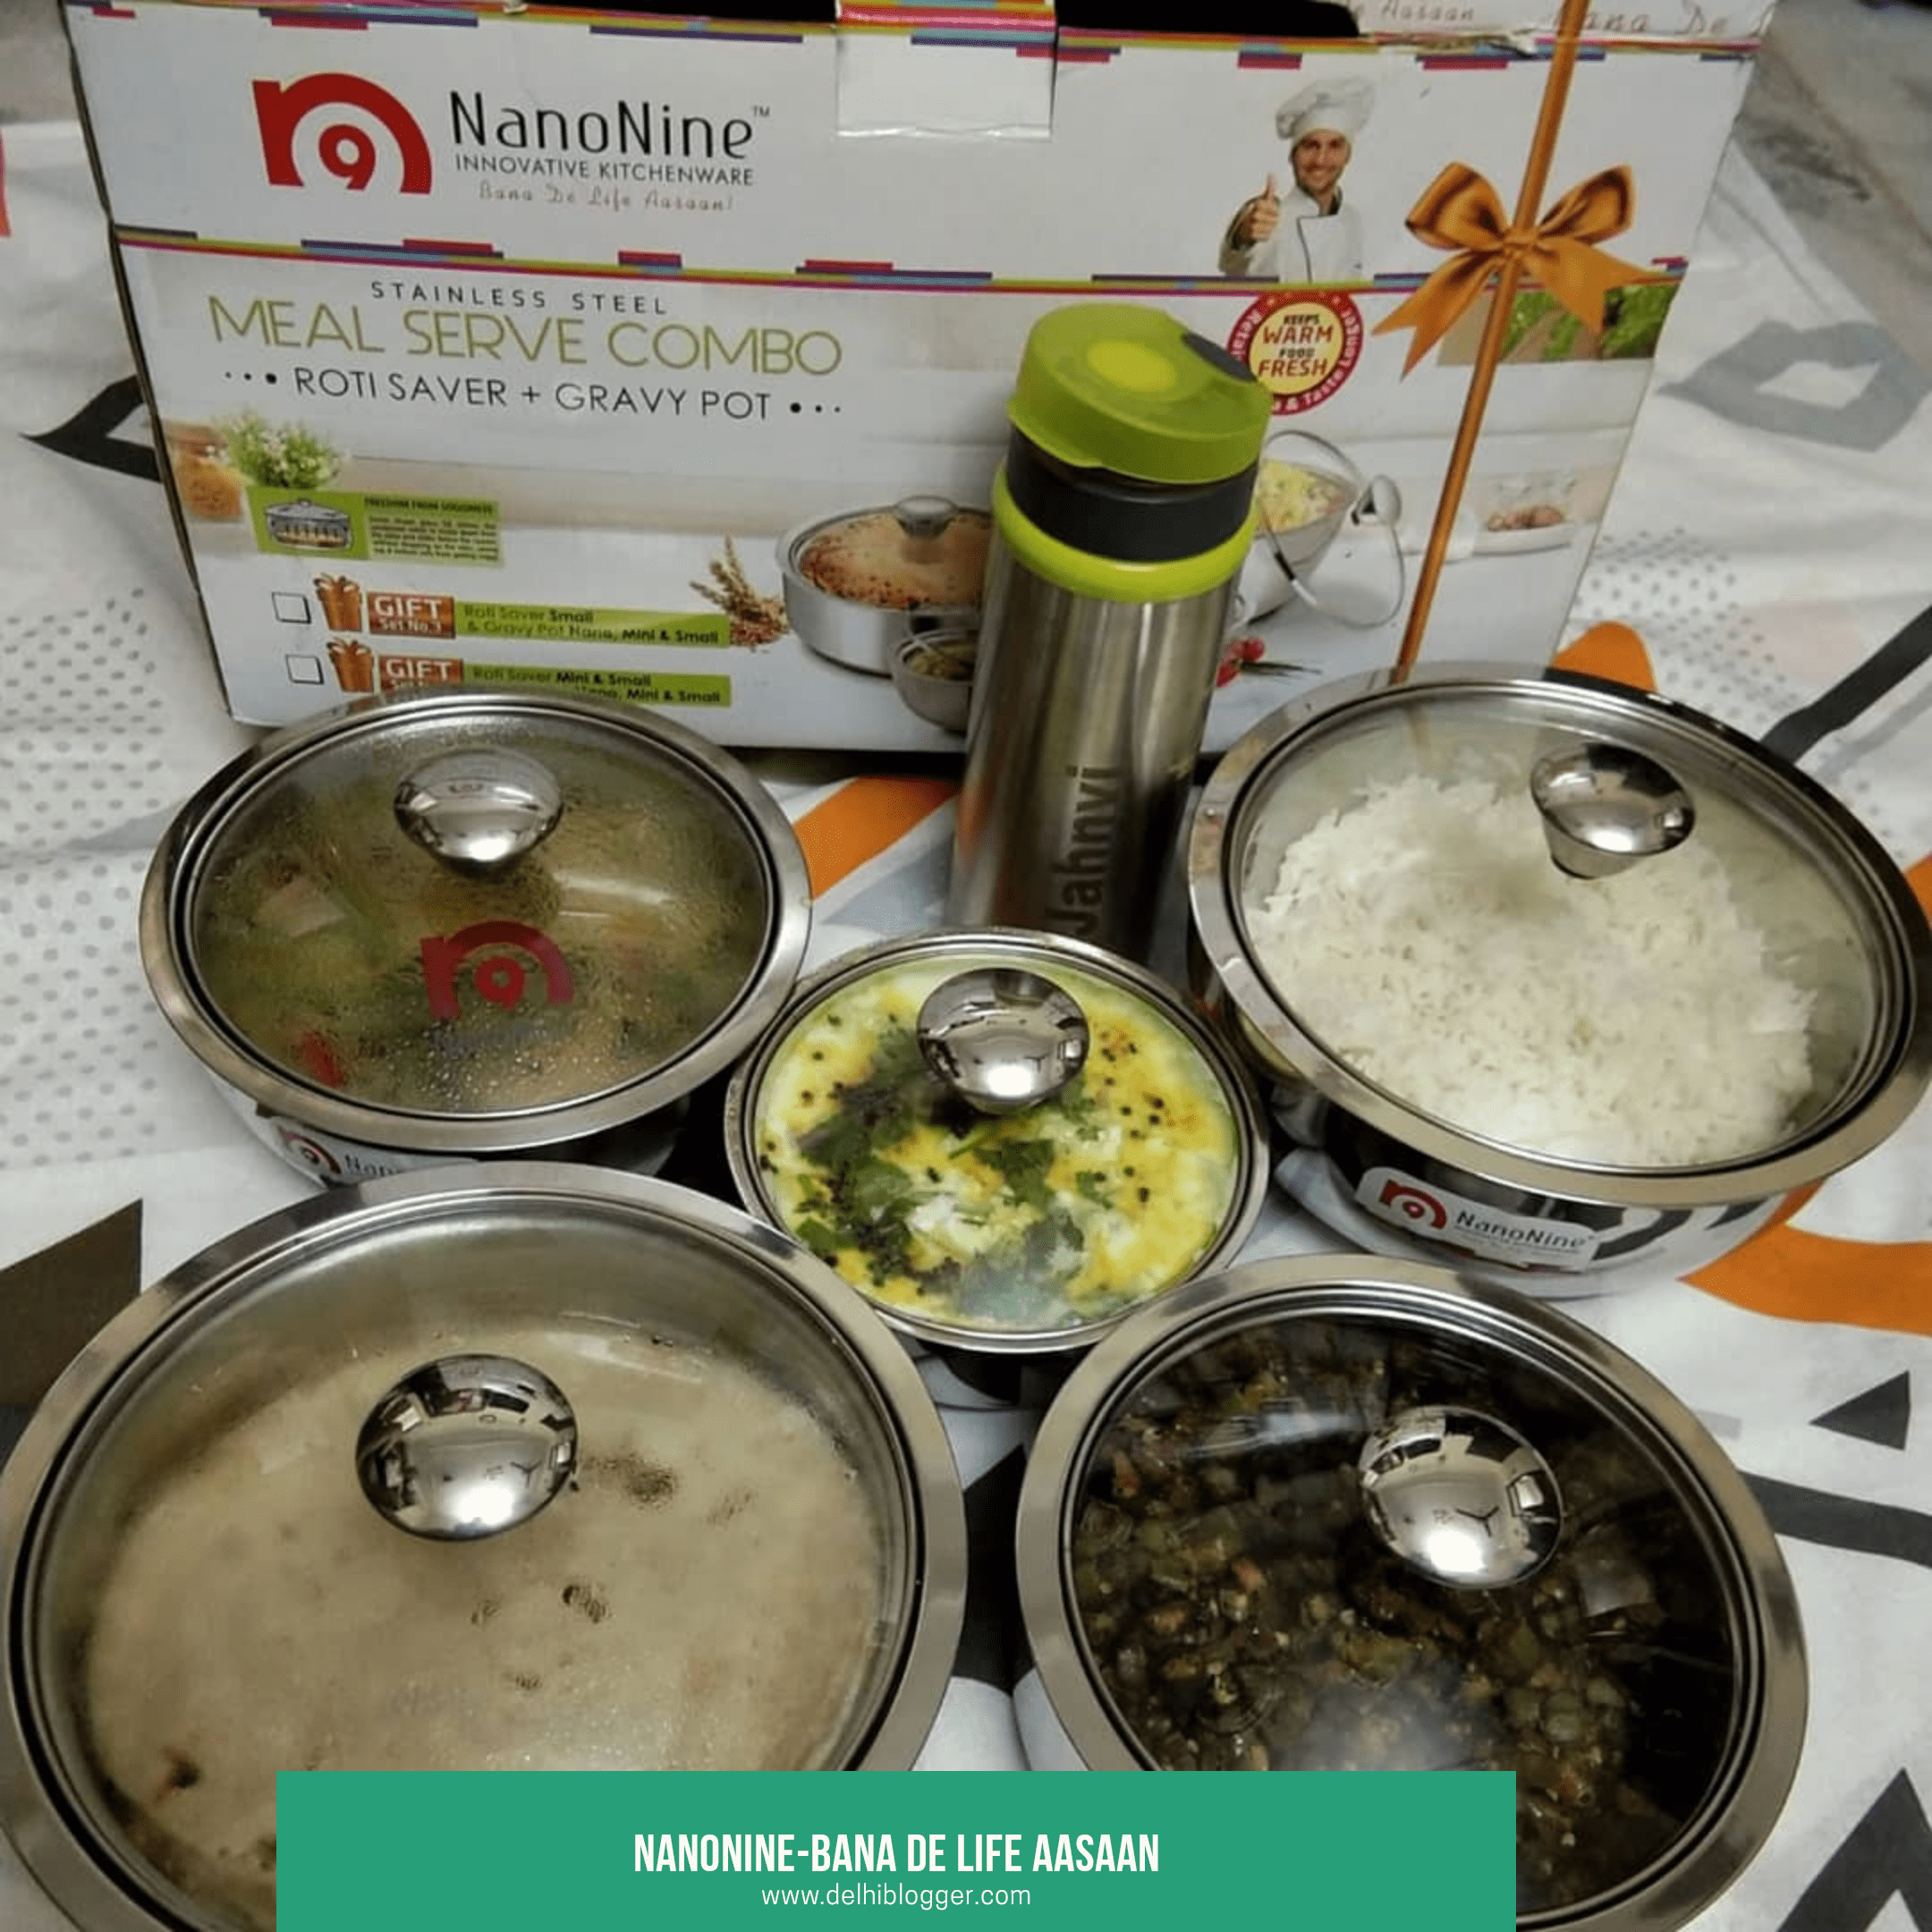 Nanonine meal serve combo,nanonine steel products,best kitchen set,delhiblogger